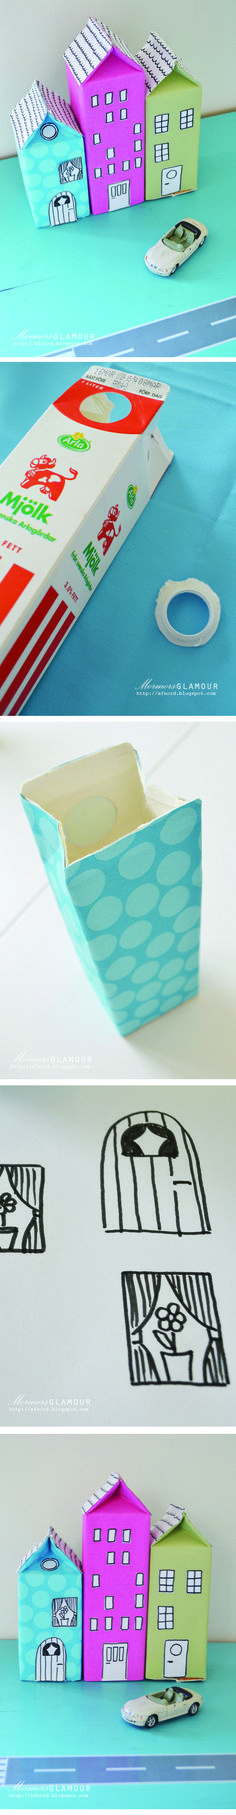 Upcycle your milkboxes